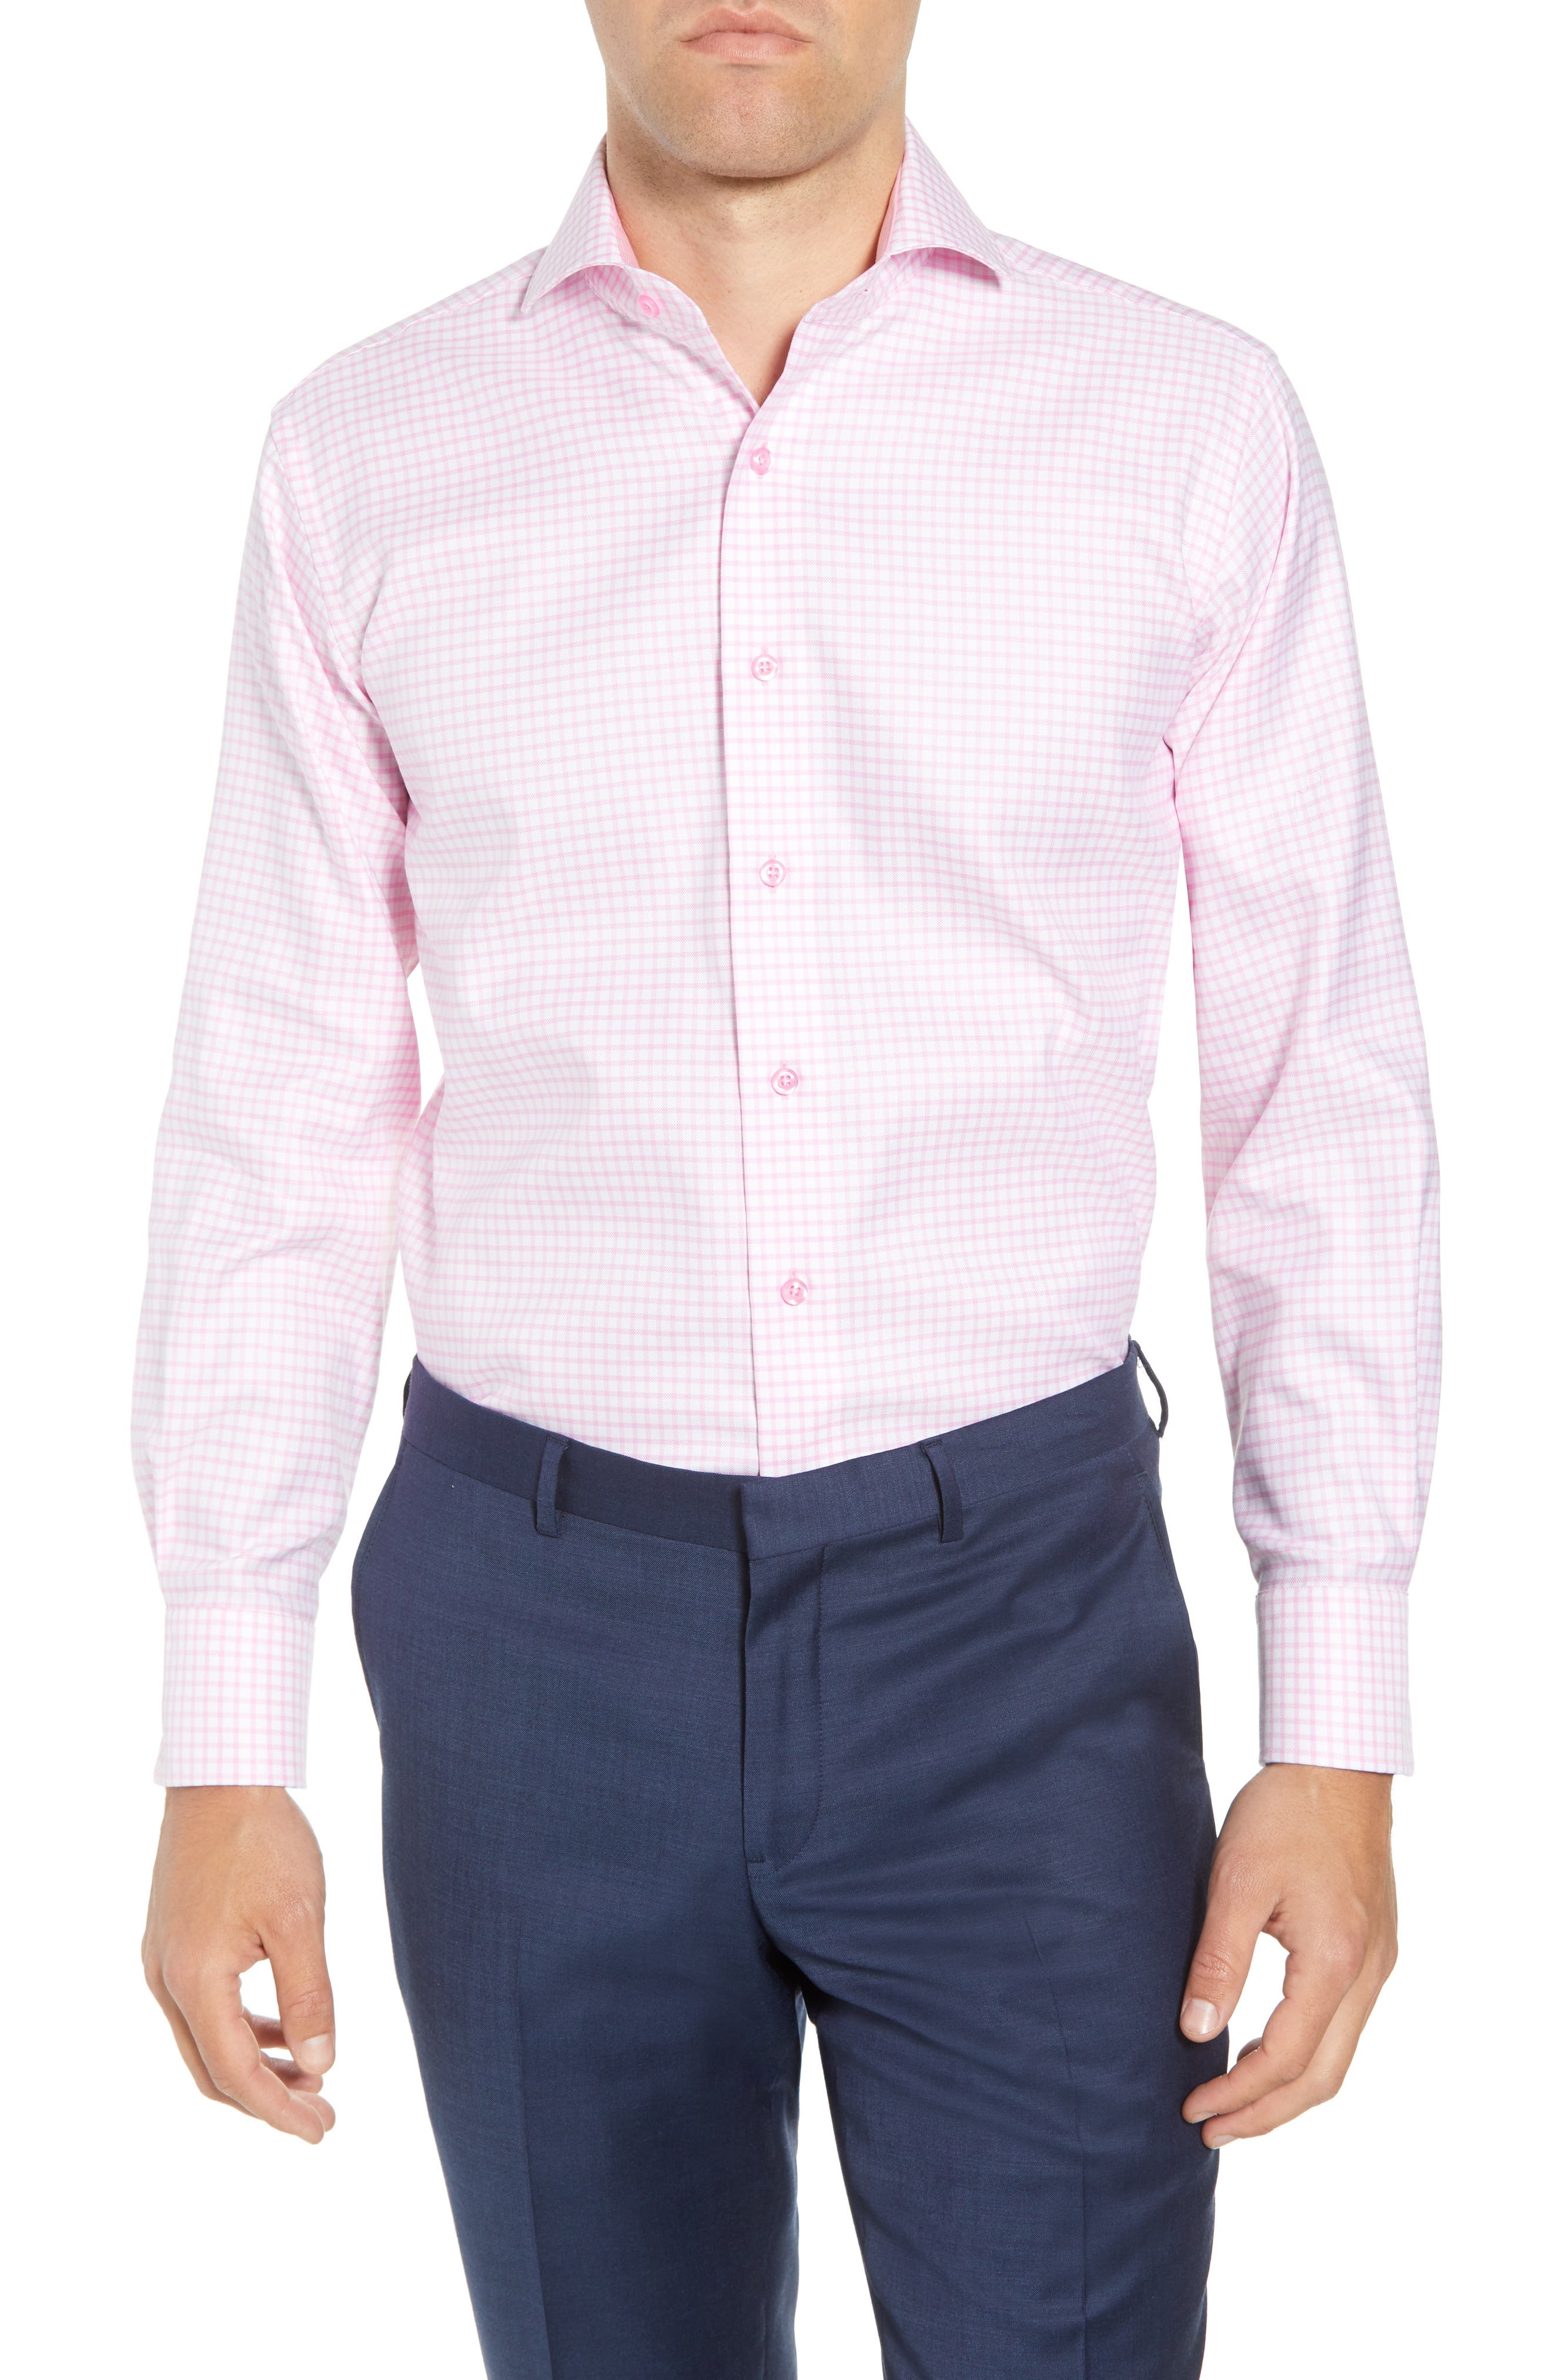 Trim Fit Check Dress Shirt,                         Main,                         color, Pink/ White